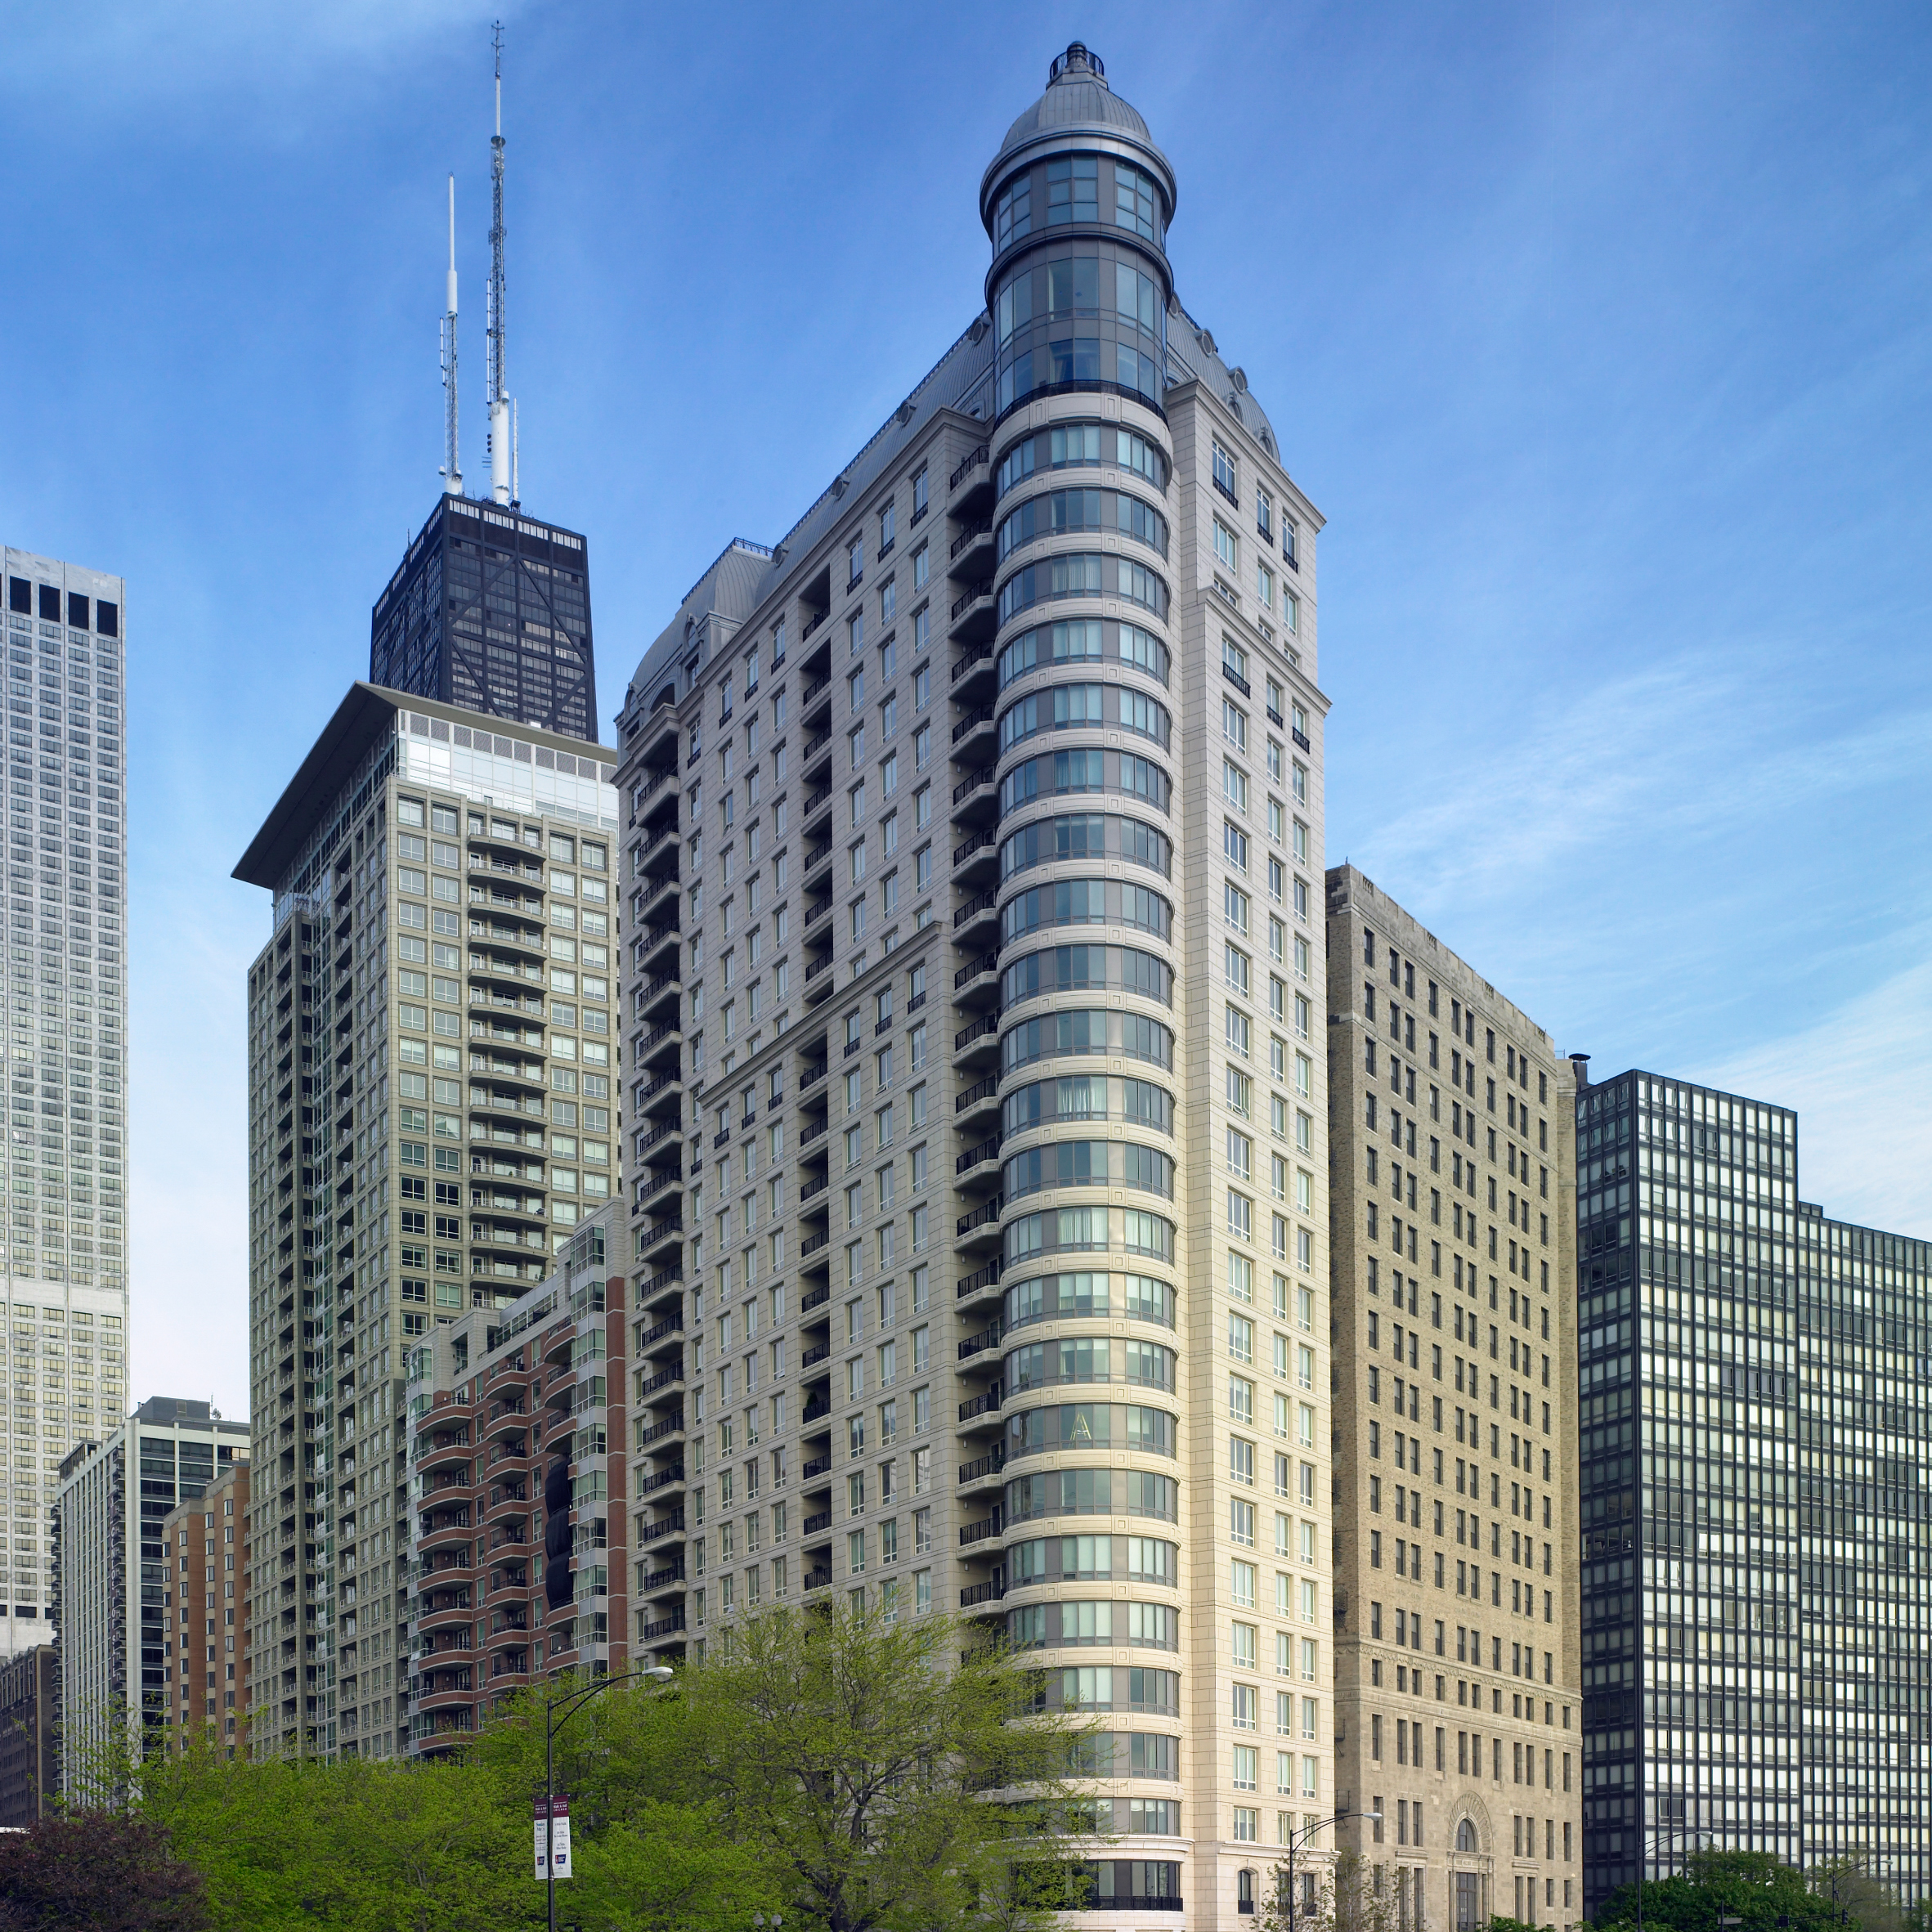 related-corporate-luxury-condo-cut-sheet-properties-840northlakeshoredrive-hero-1-14-19.jpg